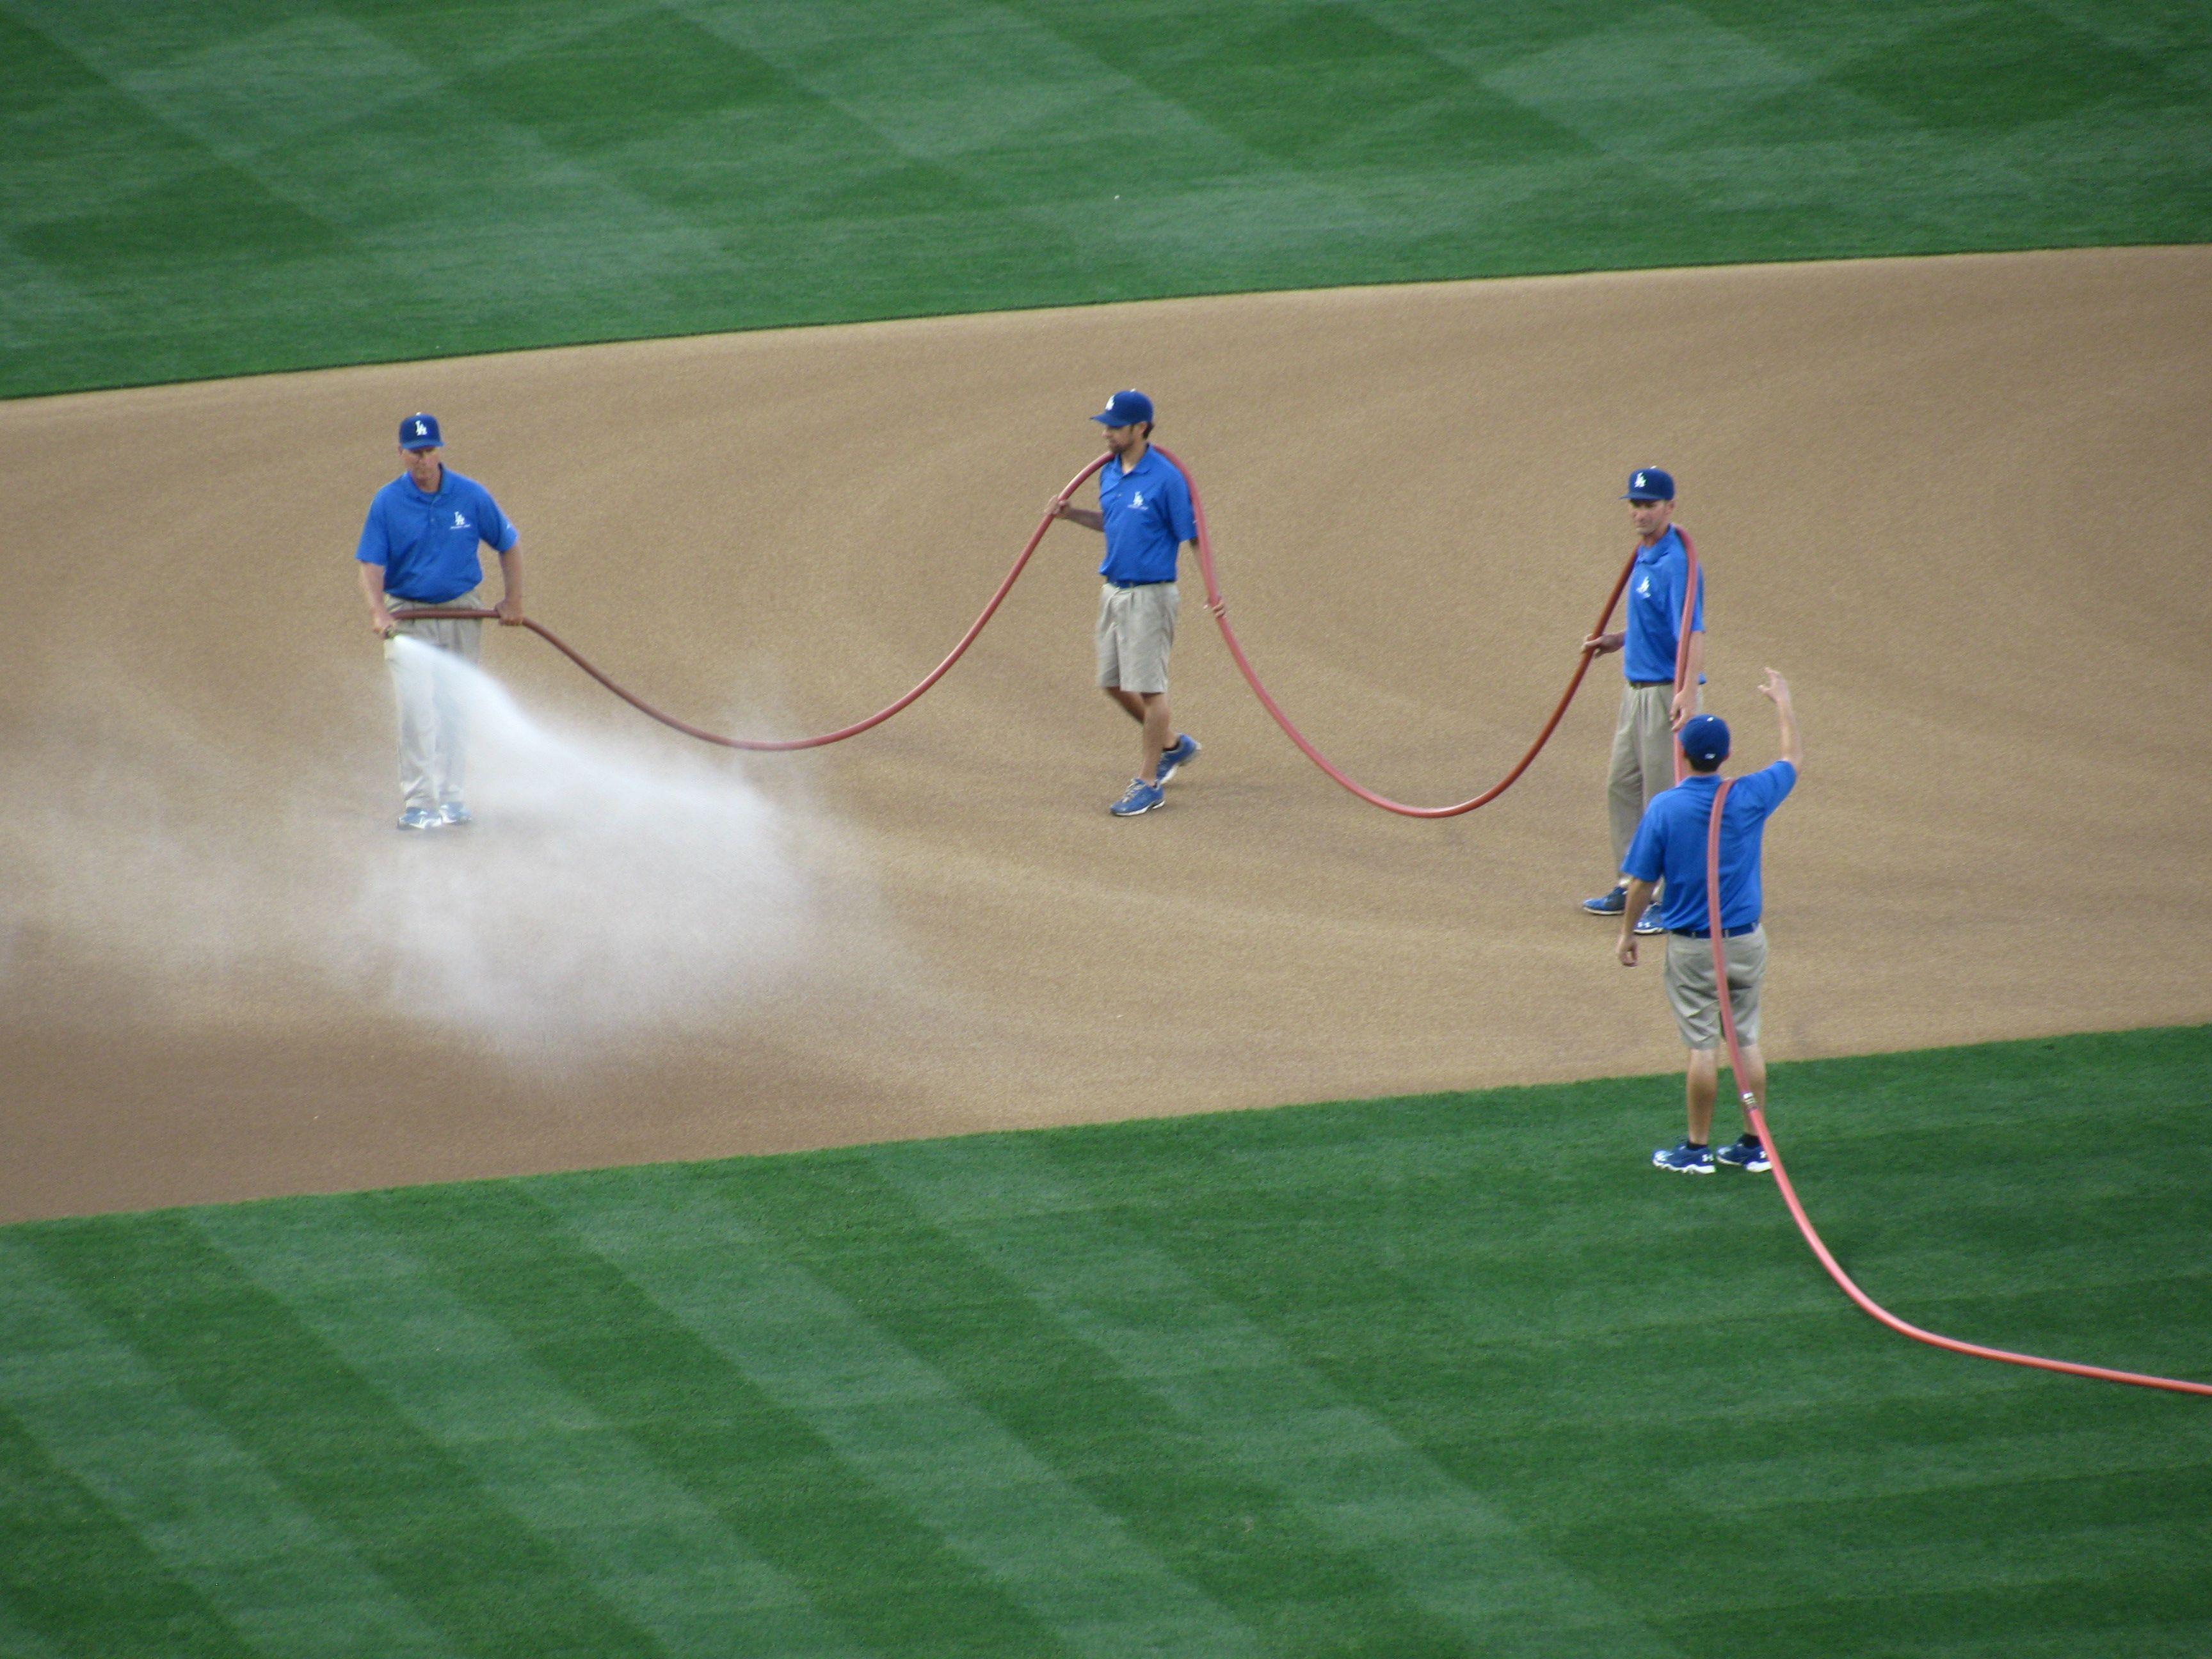 Takes Four Men To Water Down The Infield La Dodgers Baseball Dodgers Baseball Dodger Game